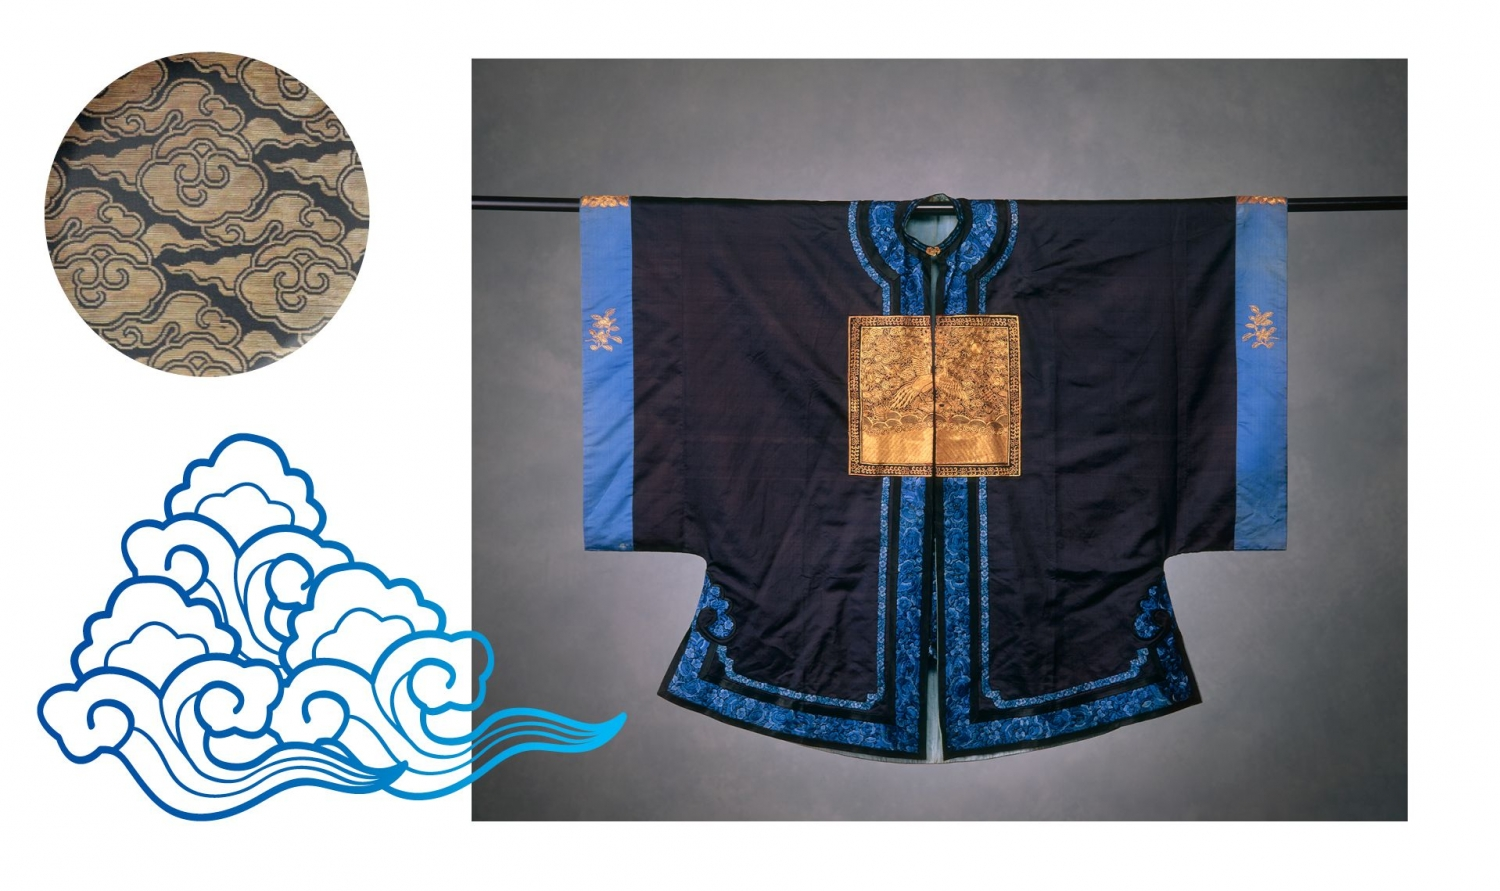 This is an image of a digital rendering of a blue outline of a cloud in the Chinese style, and photograph of a Chinese surcoat and a detail photograph of the original cloud motif from the surcoat